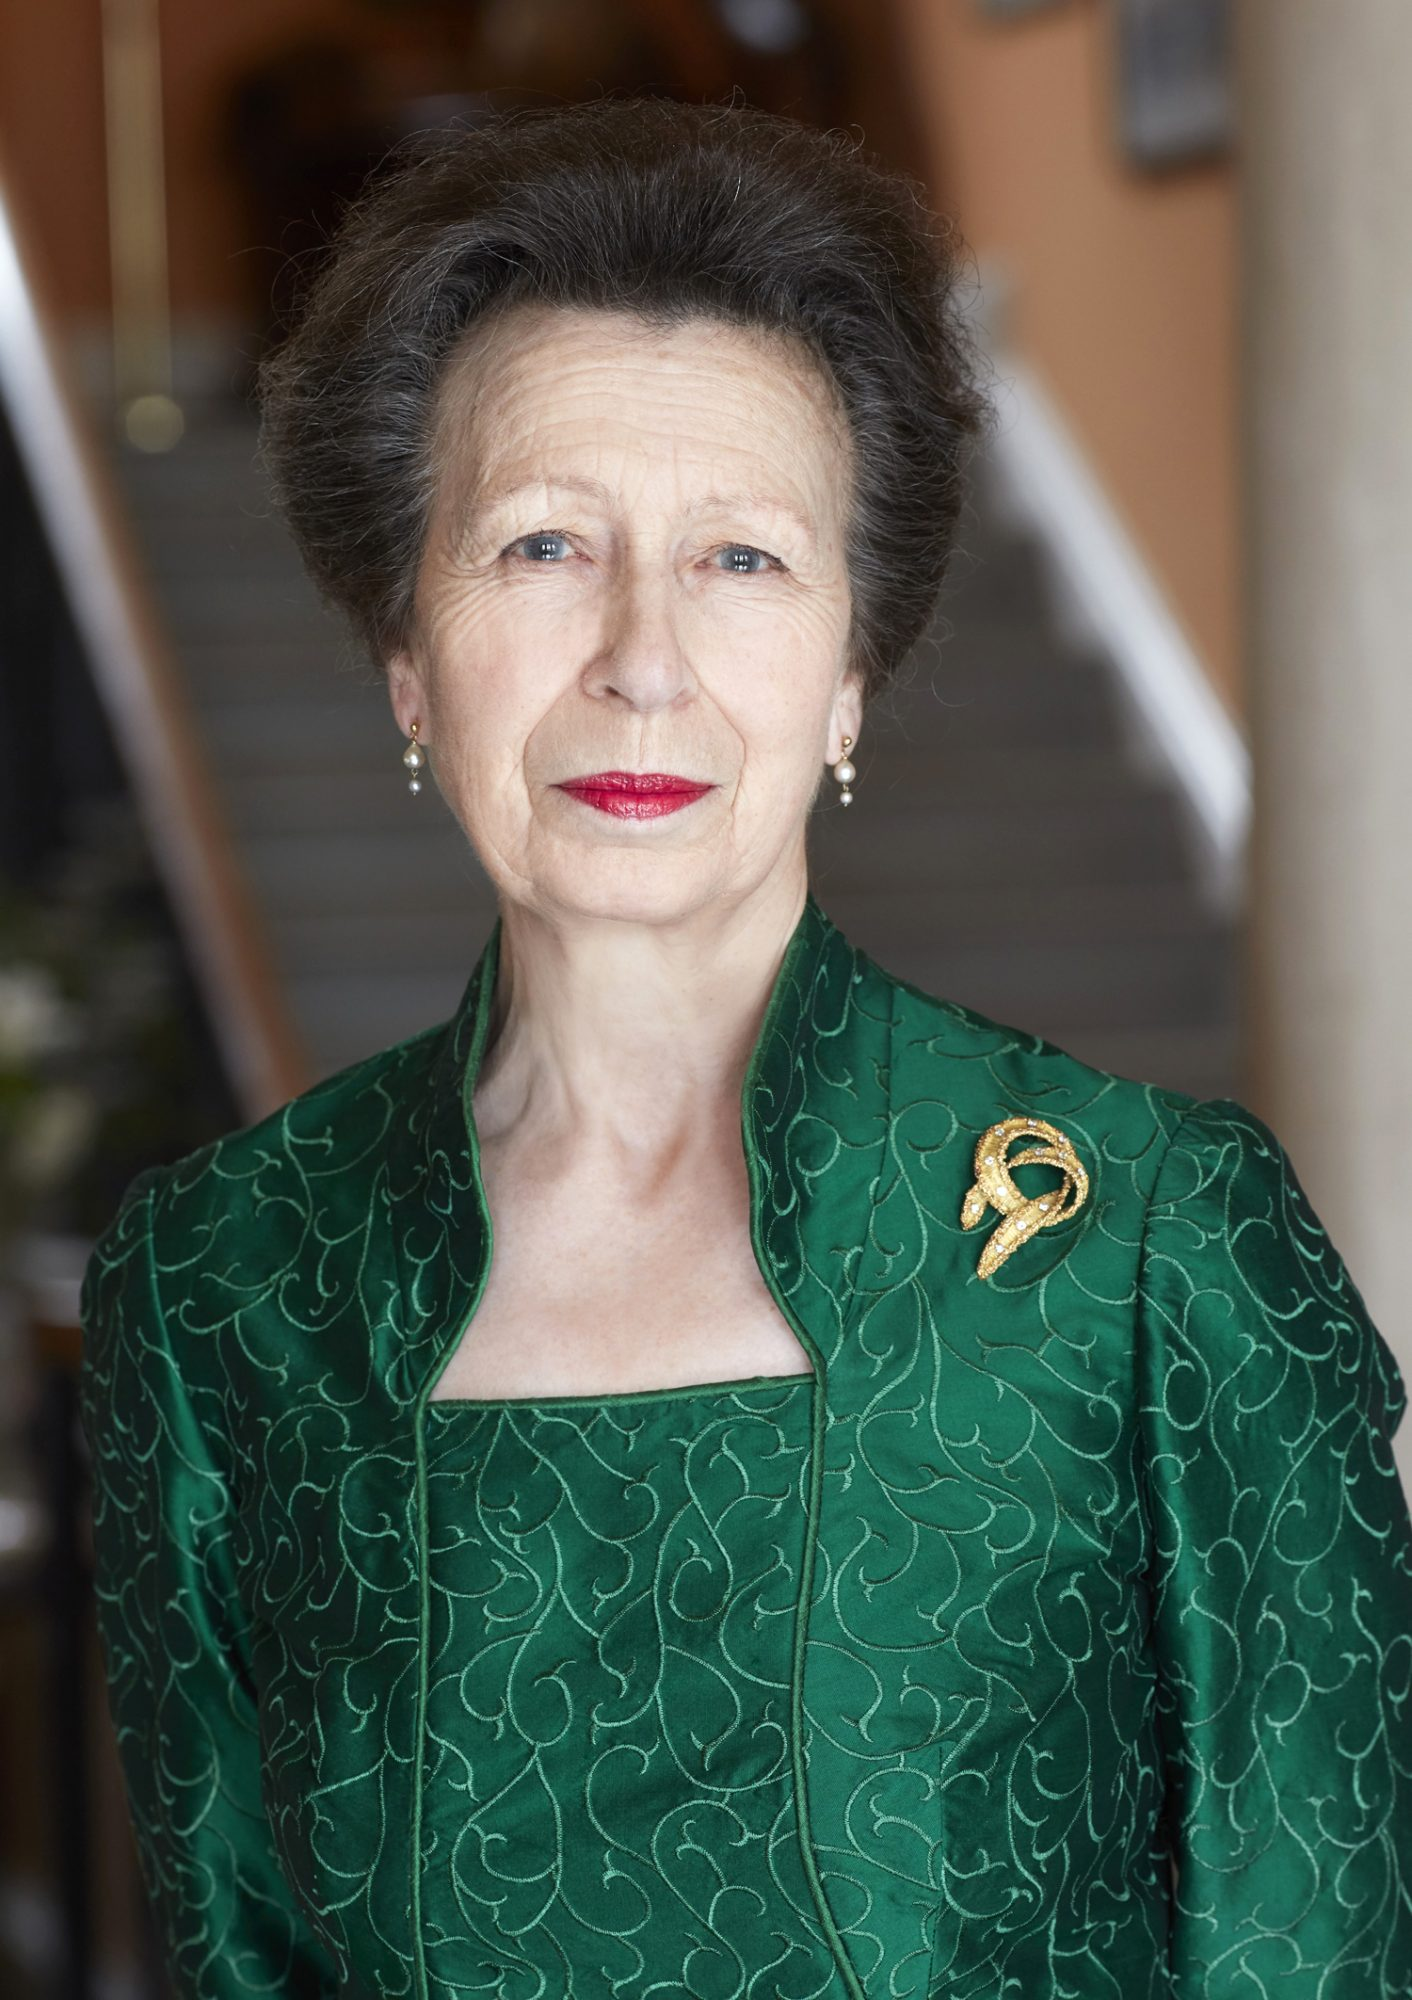 ****Embargoed to 2200 BST Friday August 14 ****The Princess Royal which have been released to celebrate her 70th birthday on Saturday